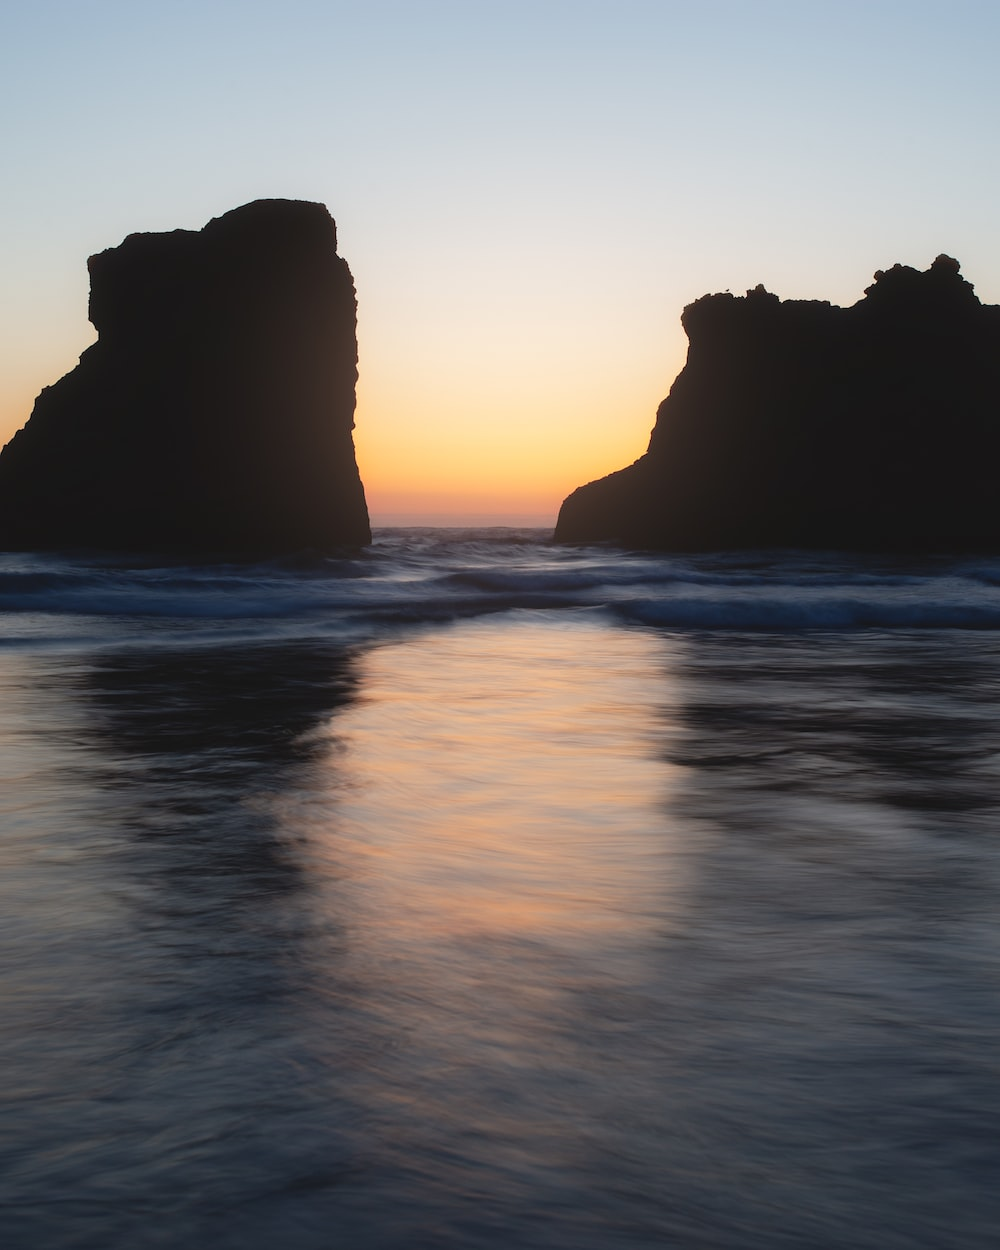 rock formation in body of water during golden hour